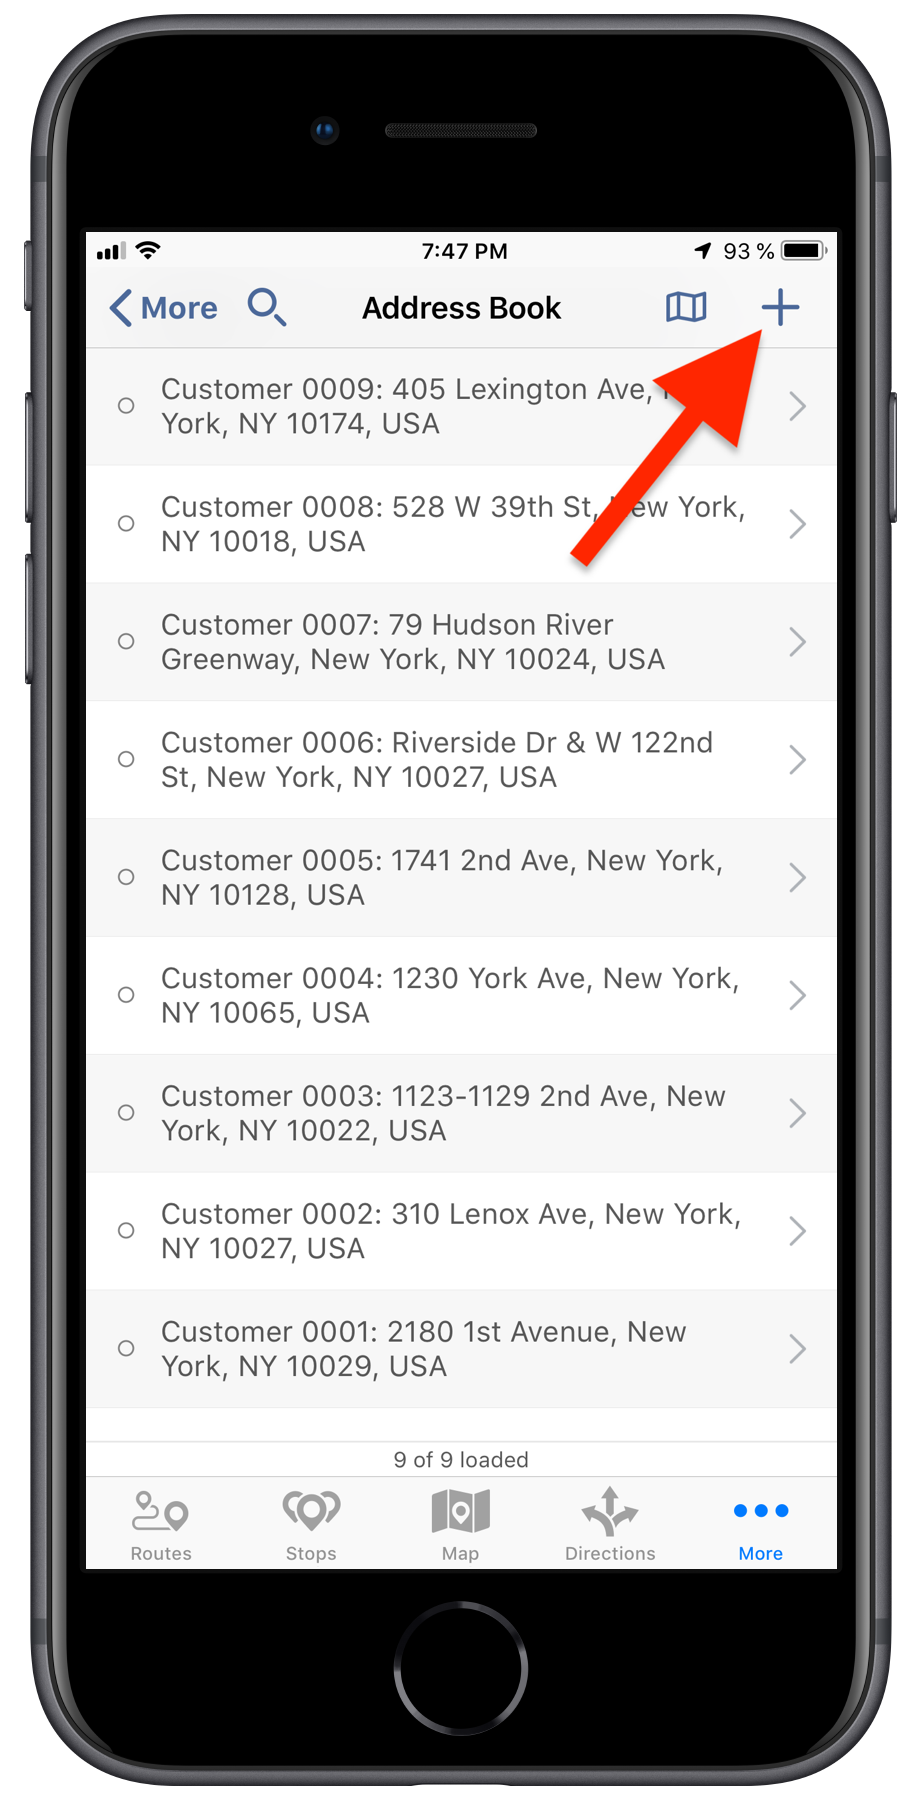 Adding New Contacts and Addresses to Your Route4Me Address Book Using the Route4Me iPhone App